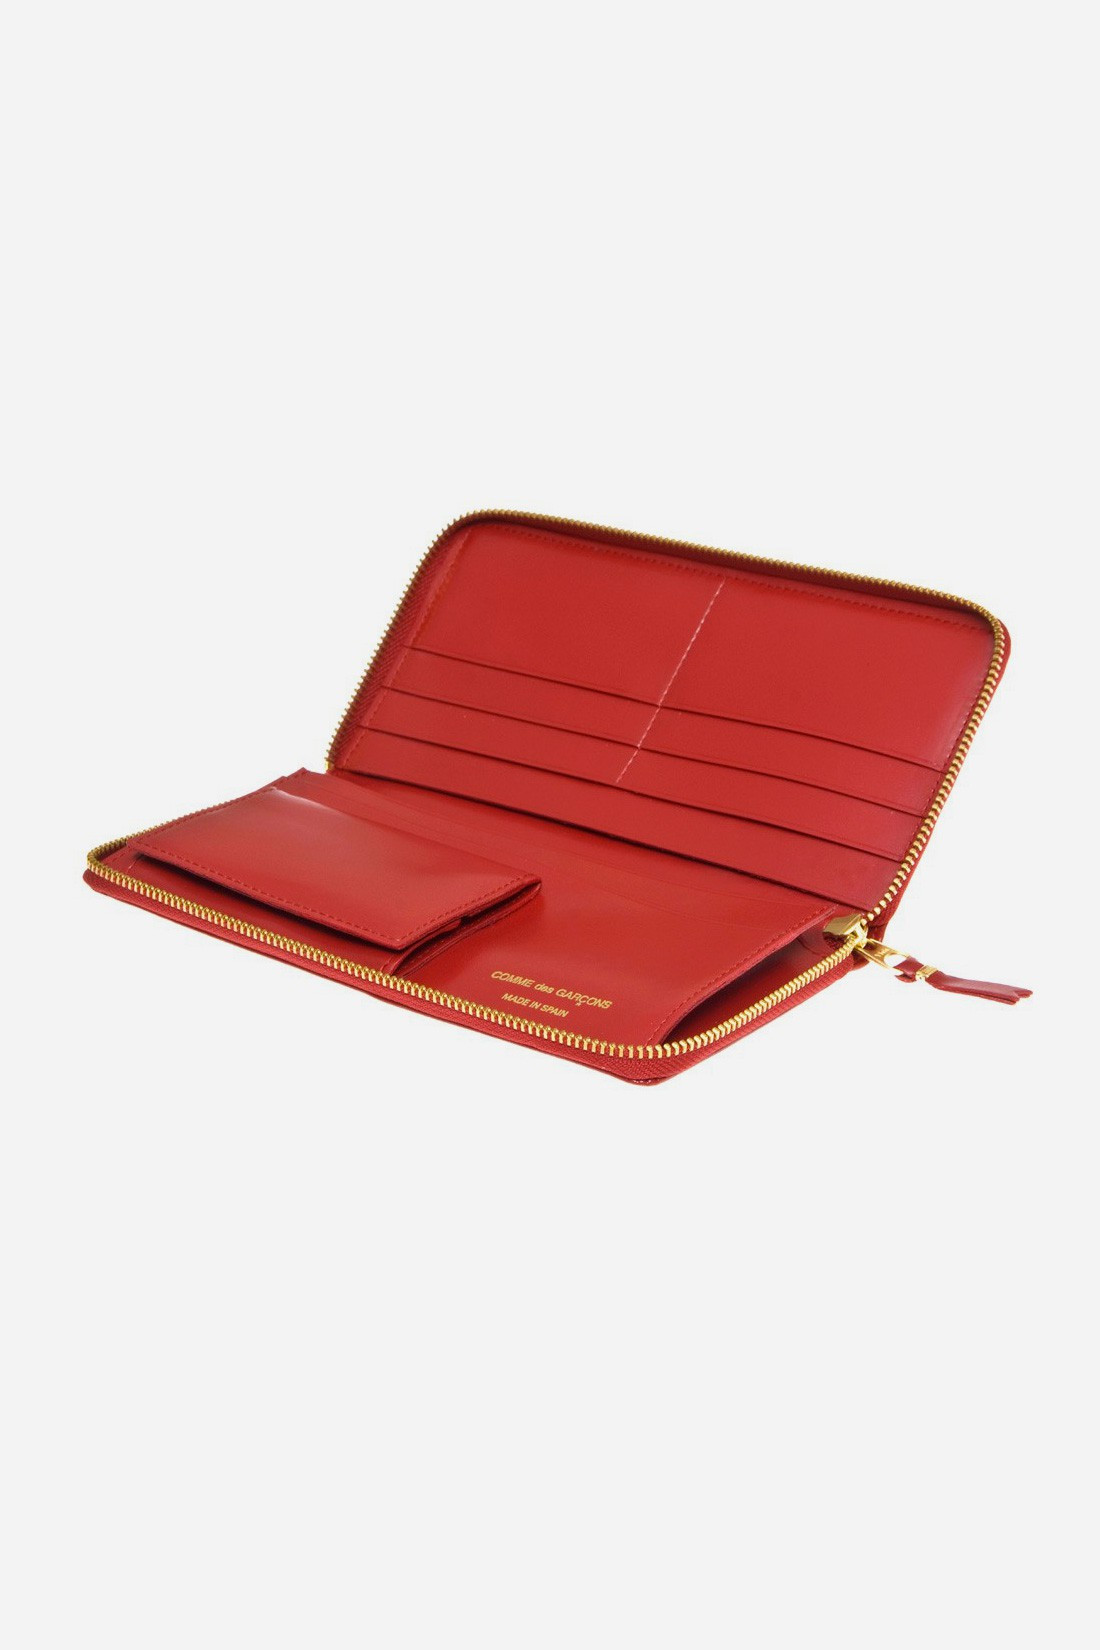 CDG WALLETS FOR WOMAN / Cdg classic leather sa0110 Red